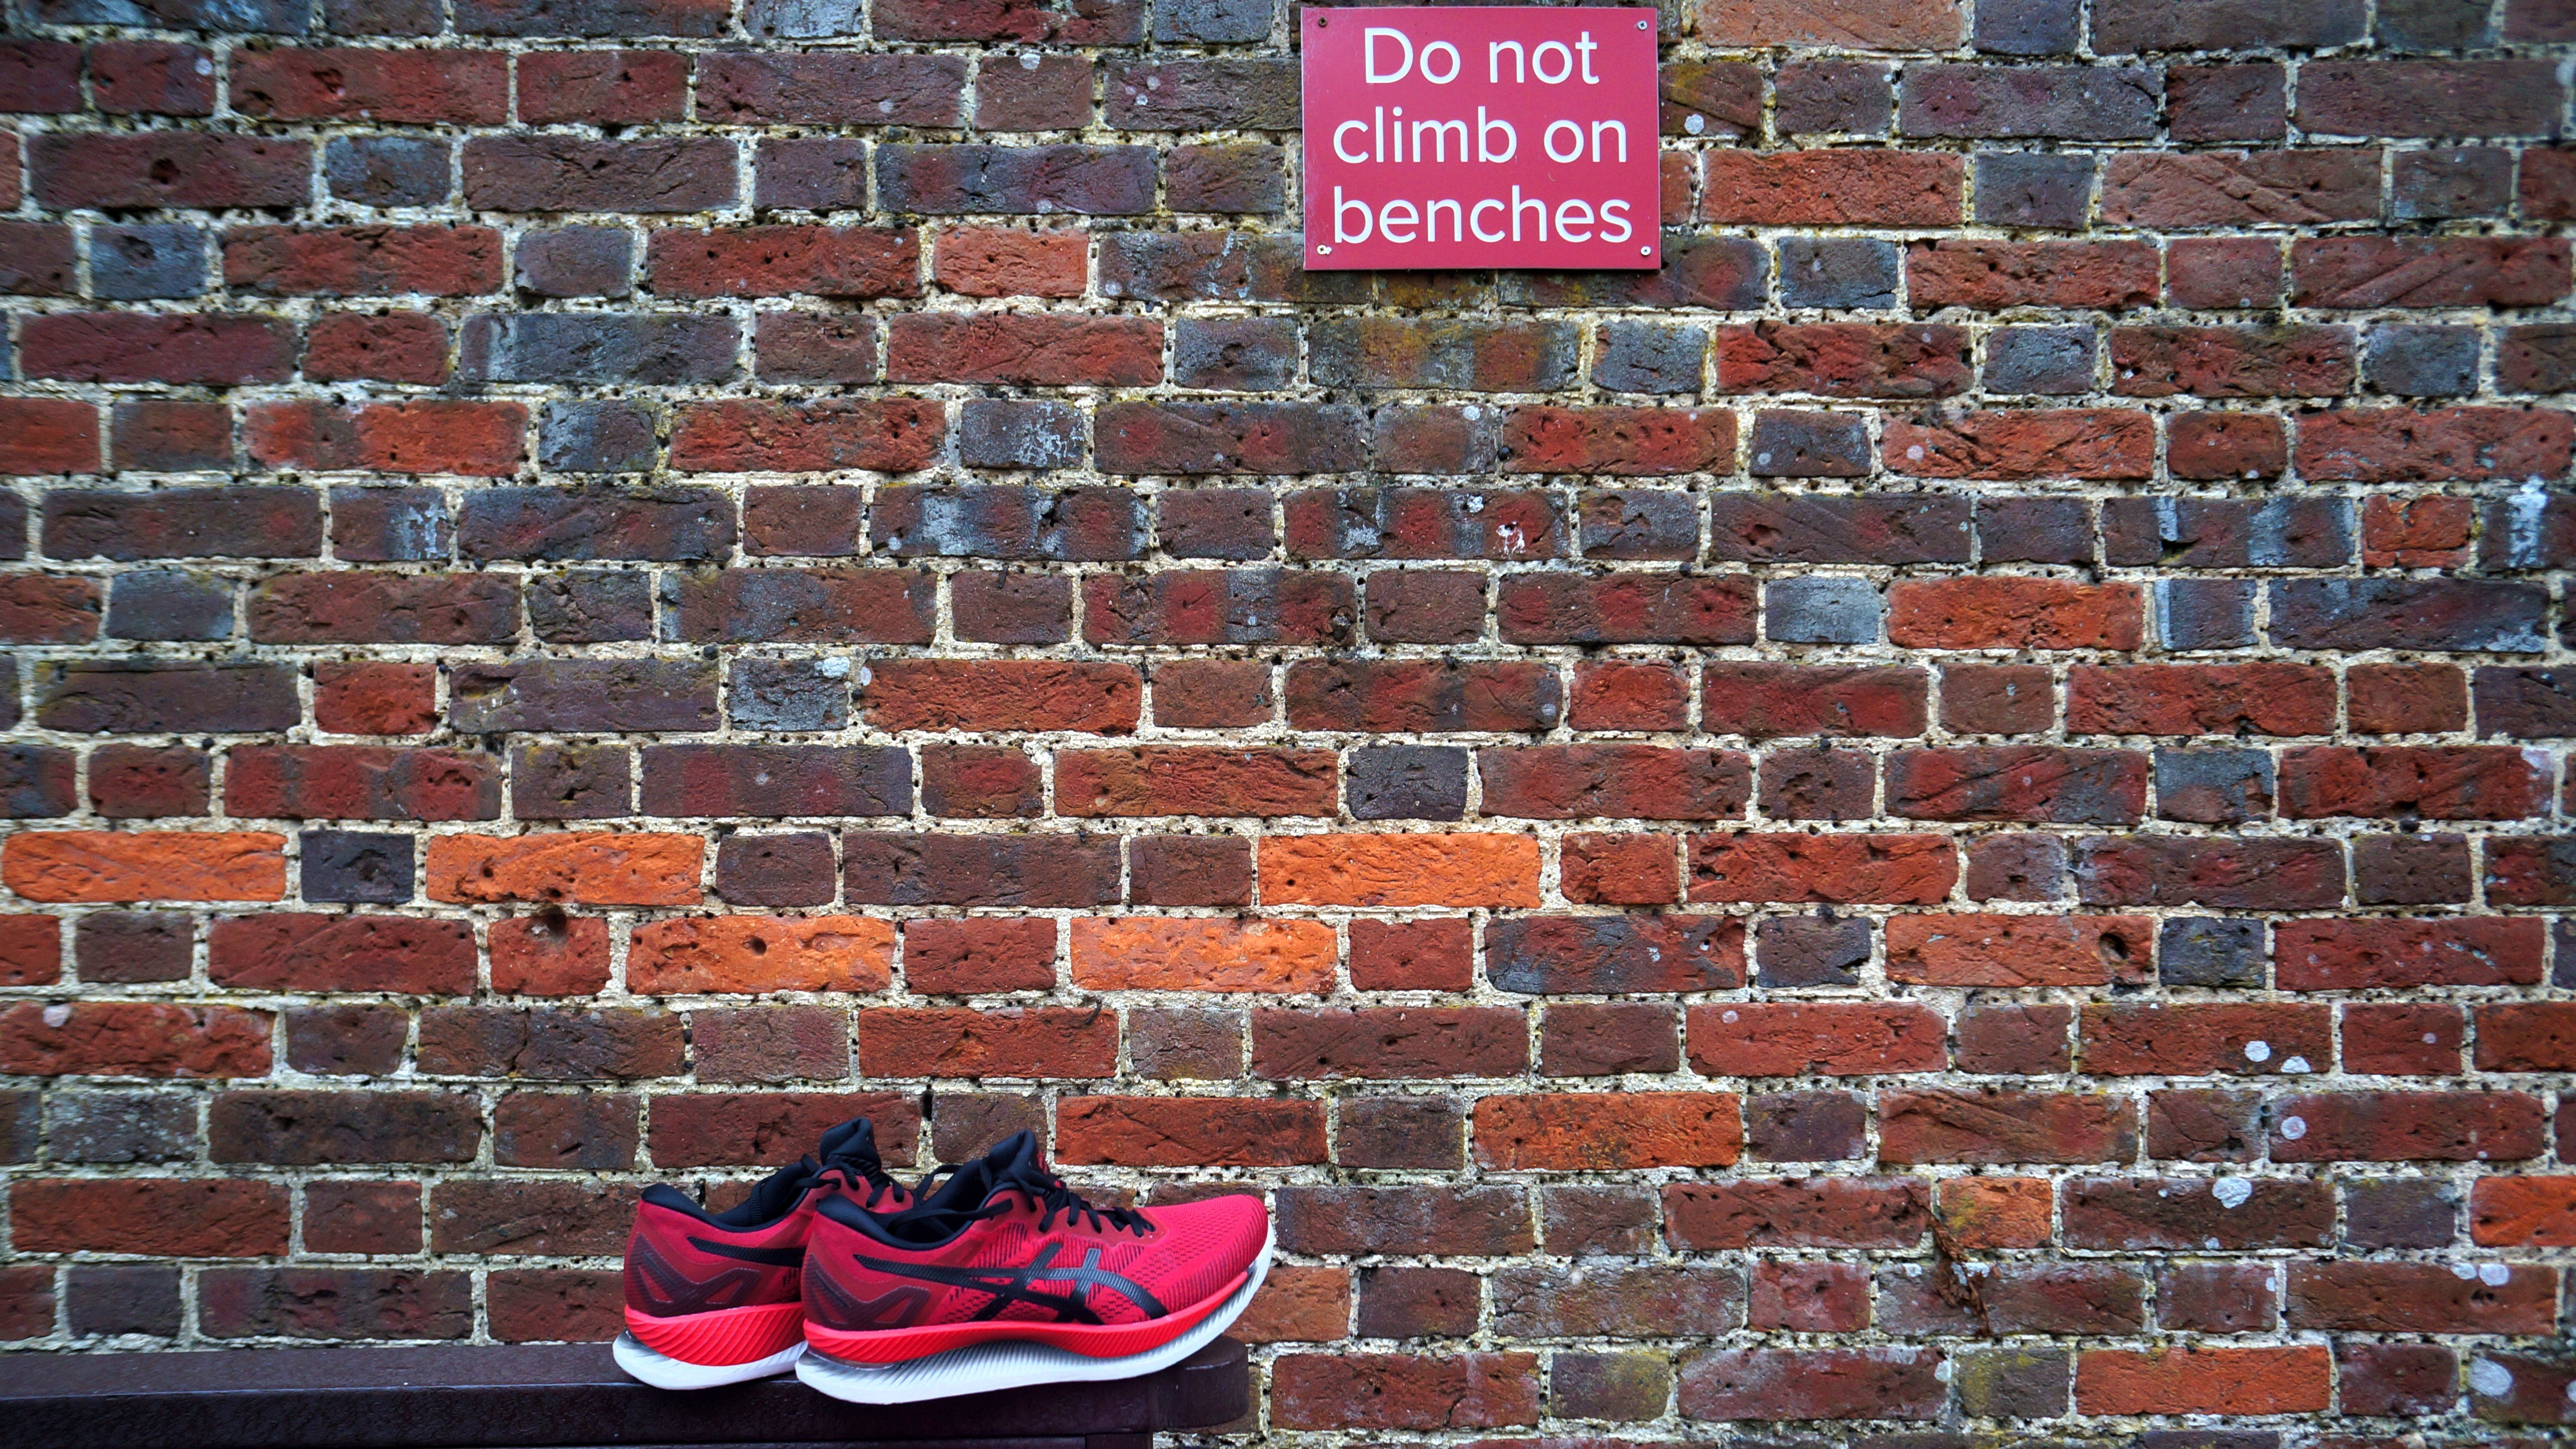 Do not climb on benches